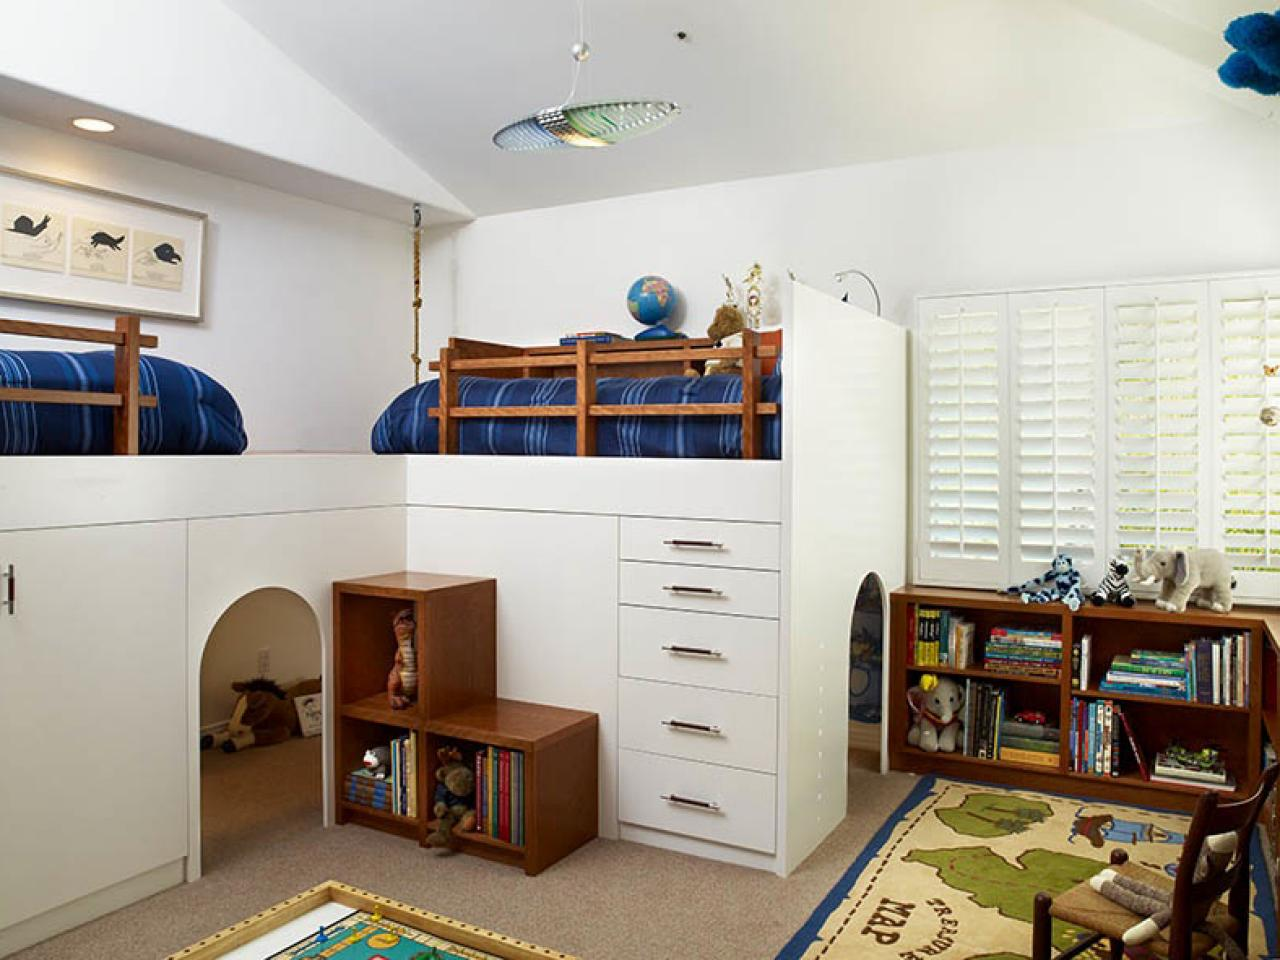 Get your kids organized at all ages hgtv for Bedroom ideas 13 year old boy